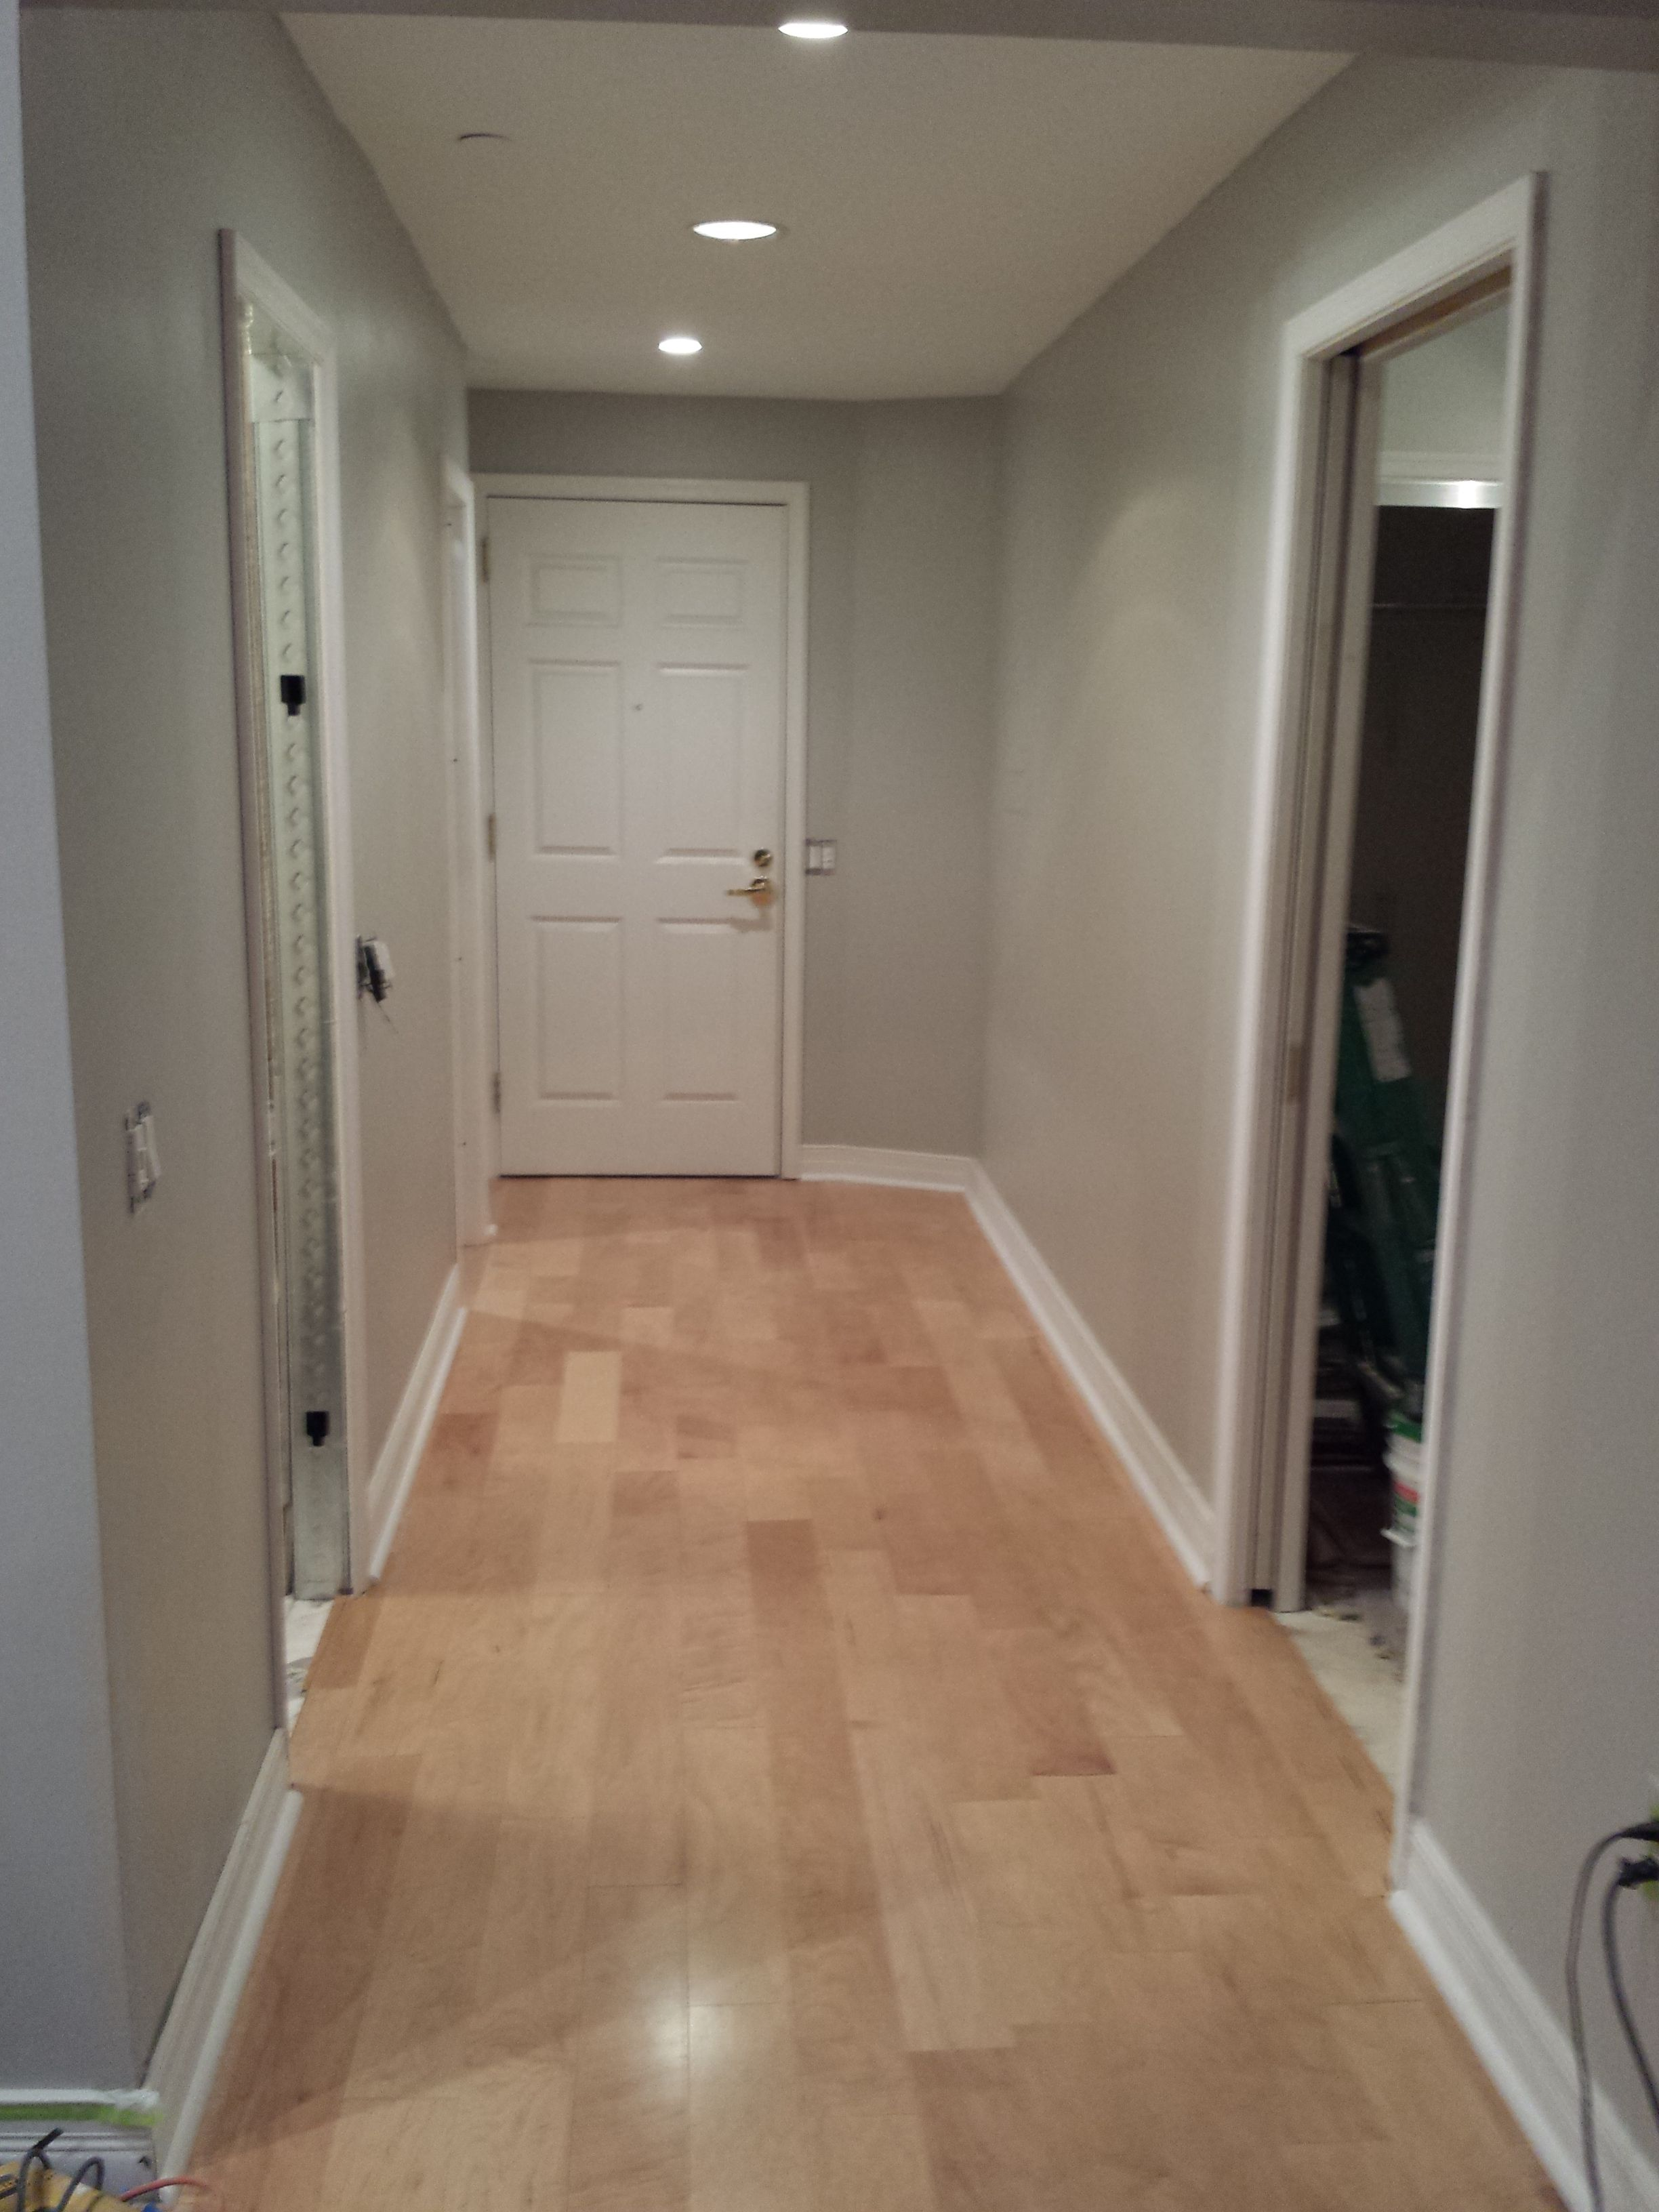 Engineered Maple Flooring With Dolphin Fin Gray Behr Satin Finish Paint Connell Condo Design